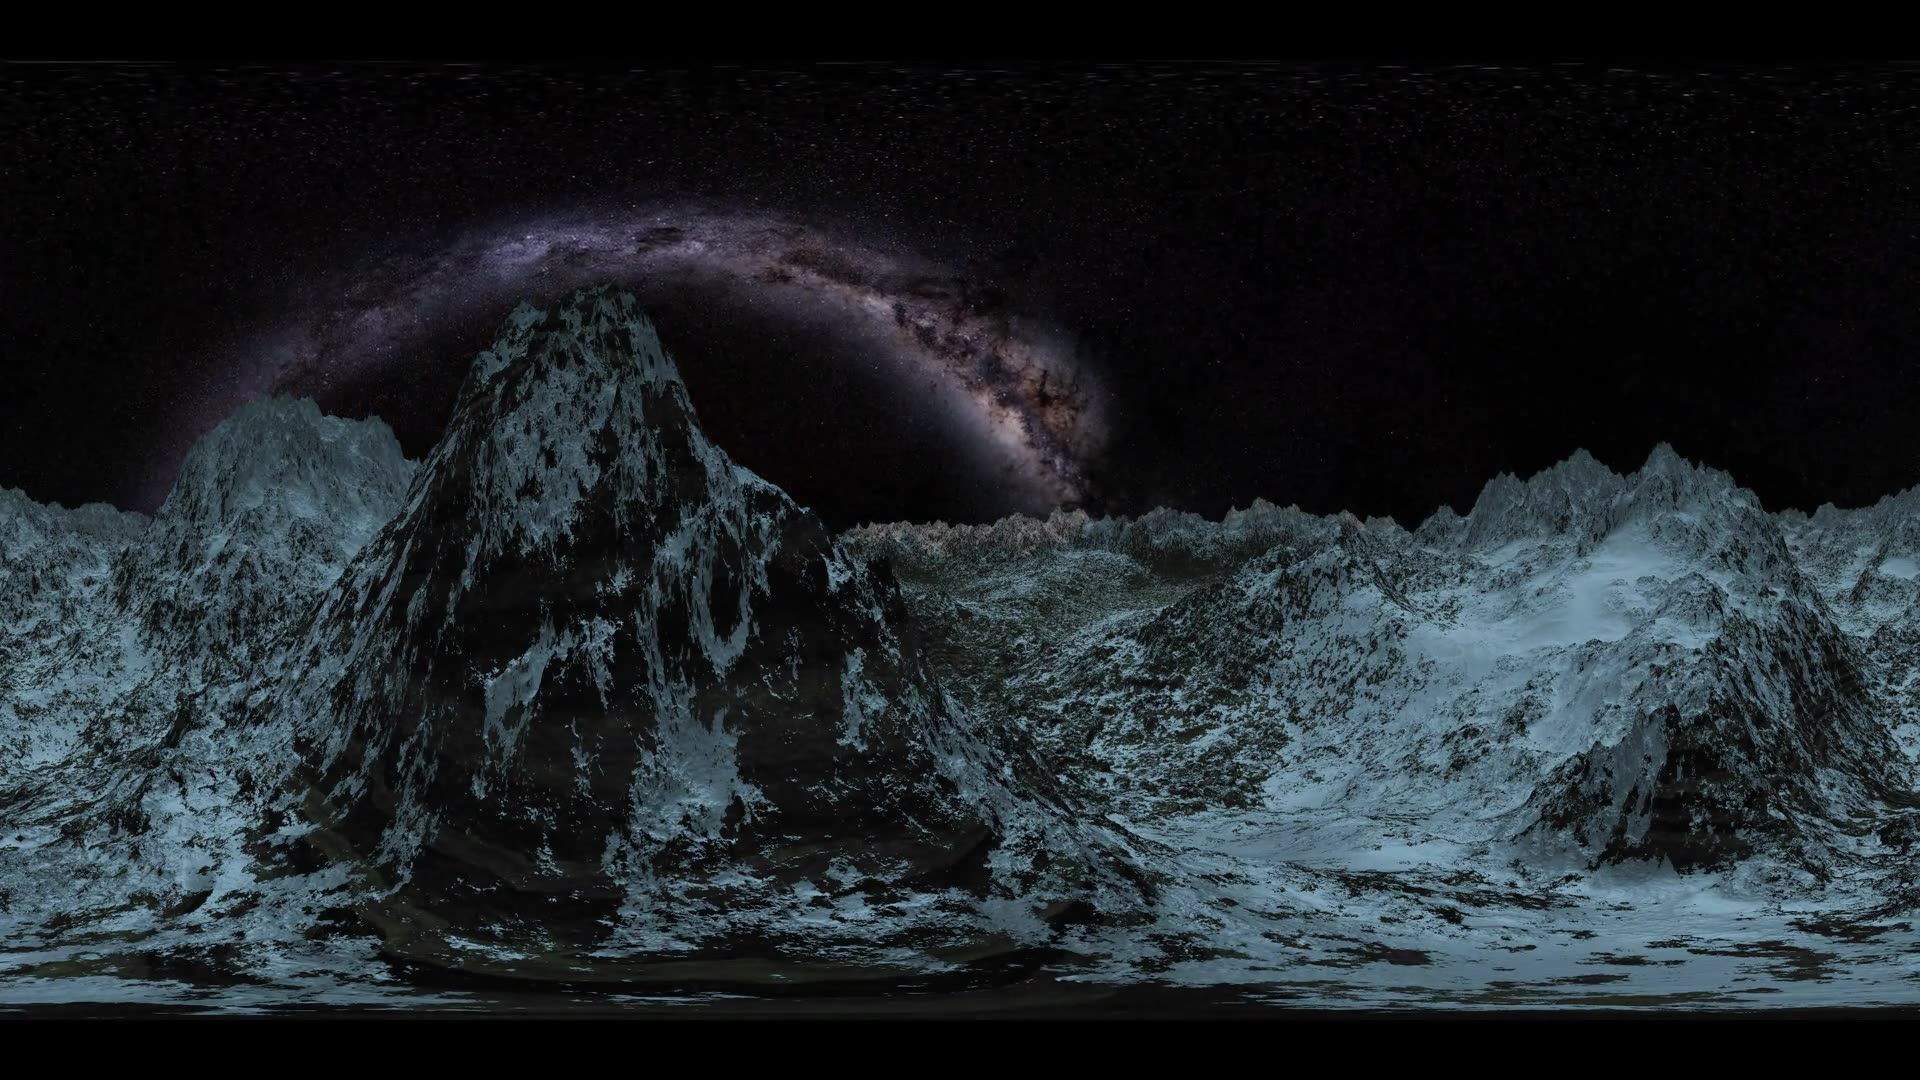 vr 360 6k Milky Way stars at sunset in mountains virtual reality. VR360 degree video